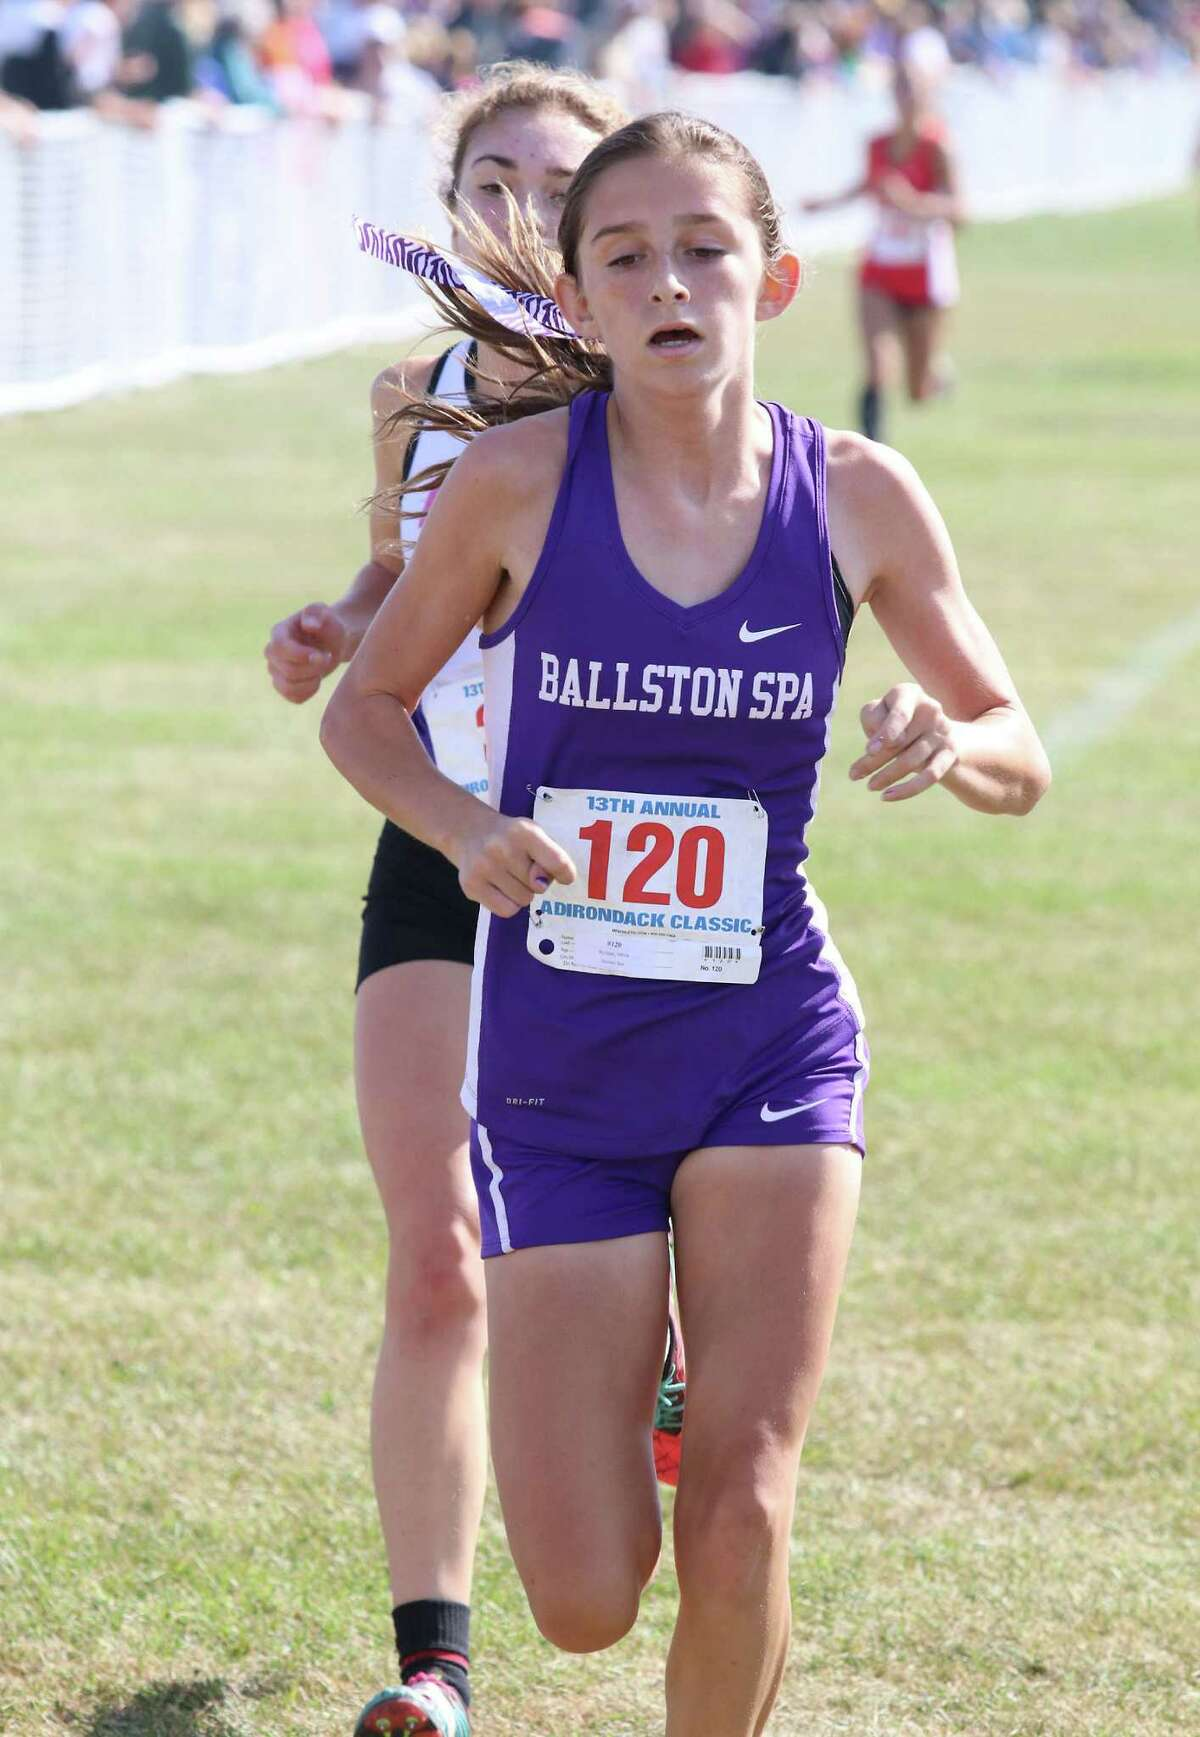 Olivia Lazarou, Amsterdam girls' cross country:Captured the Large School title at the Fort Plain Invitational in 18:19.9.